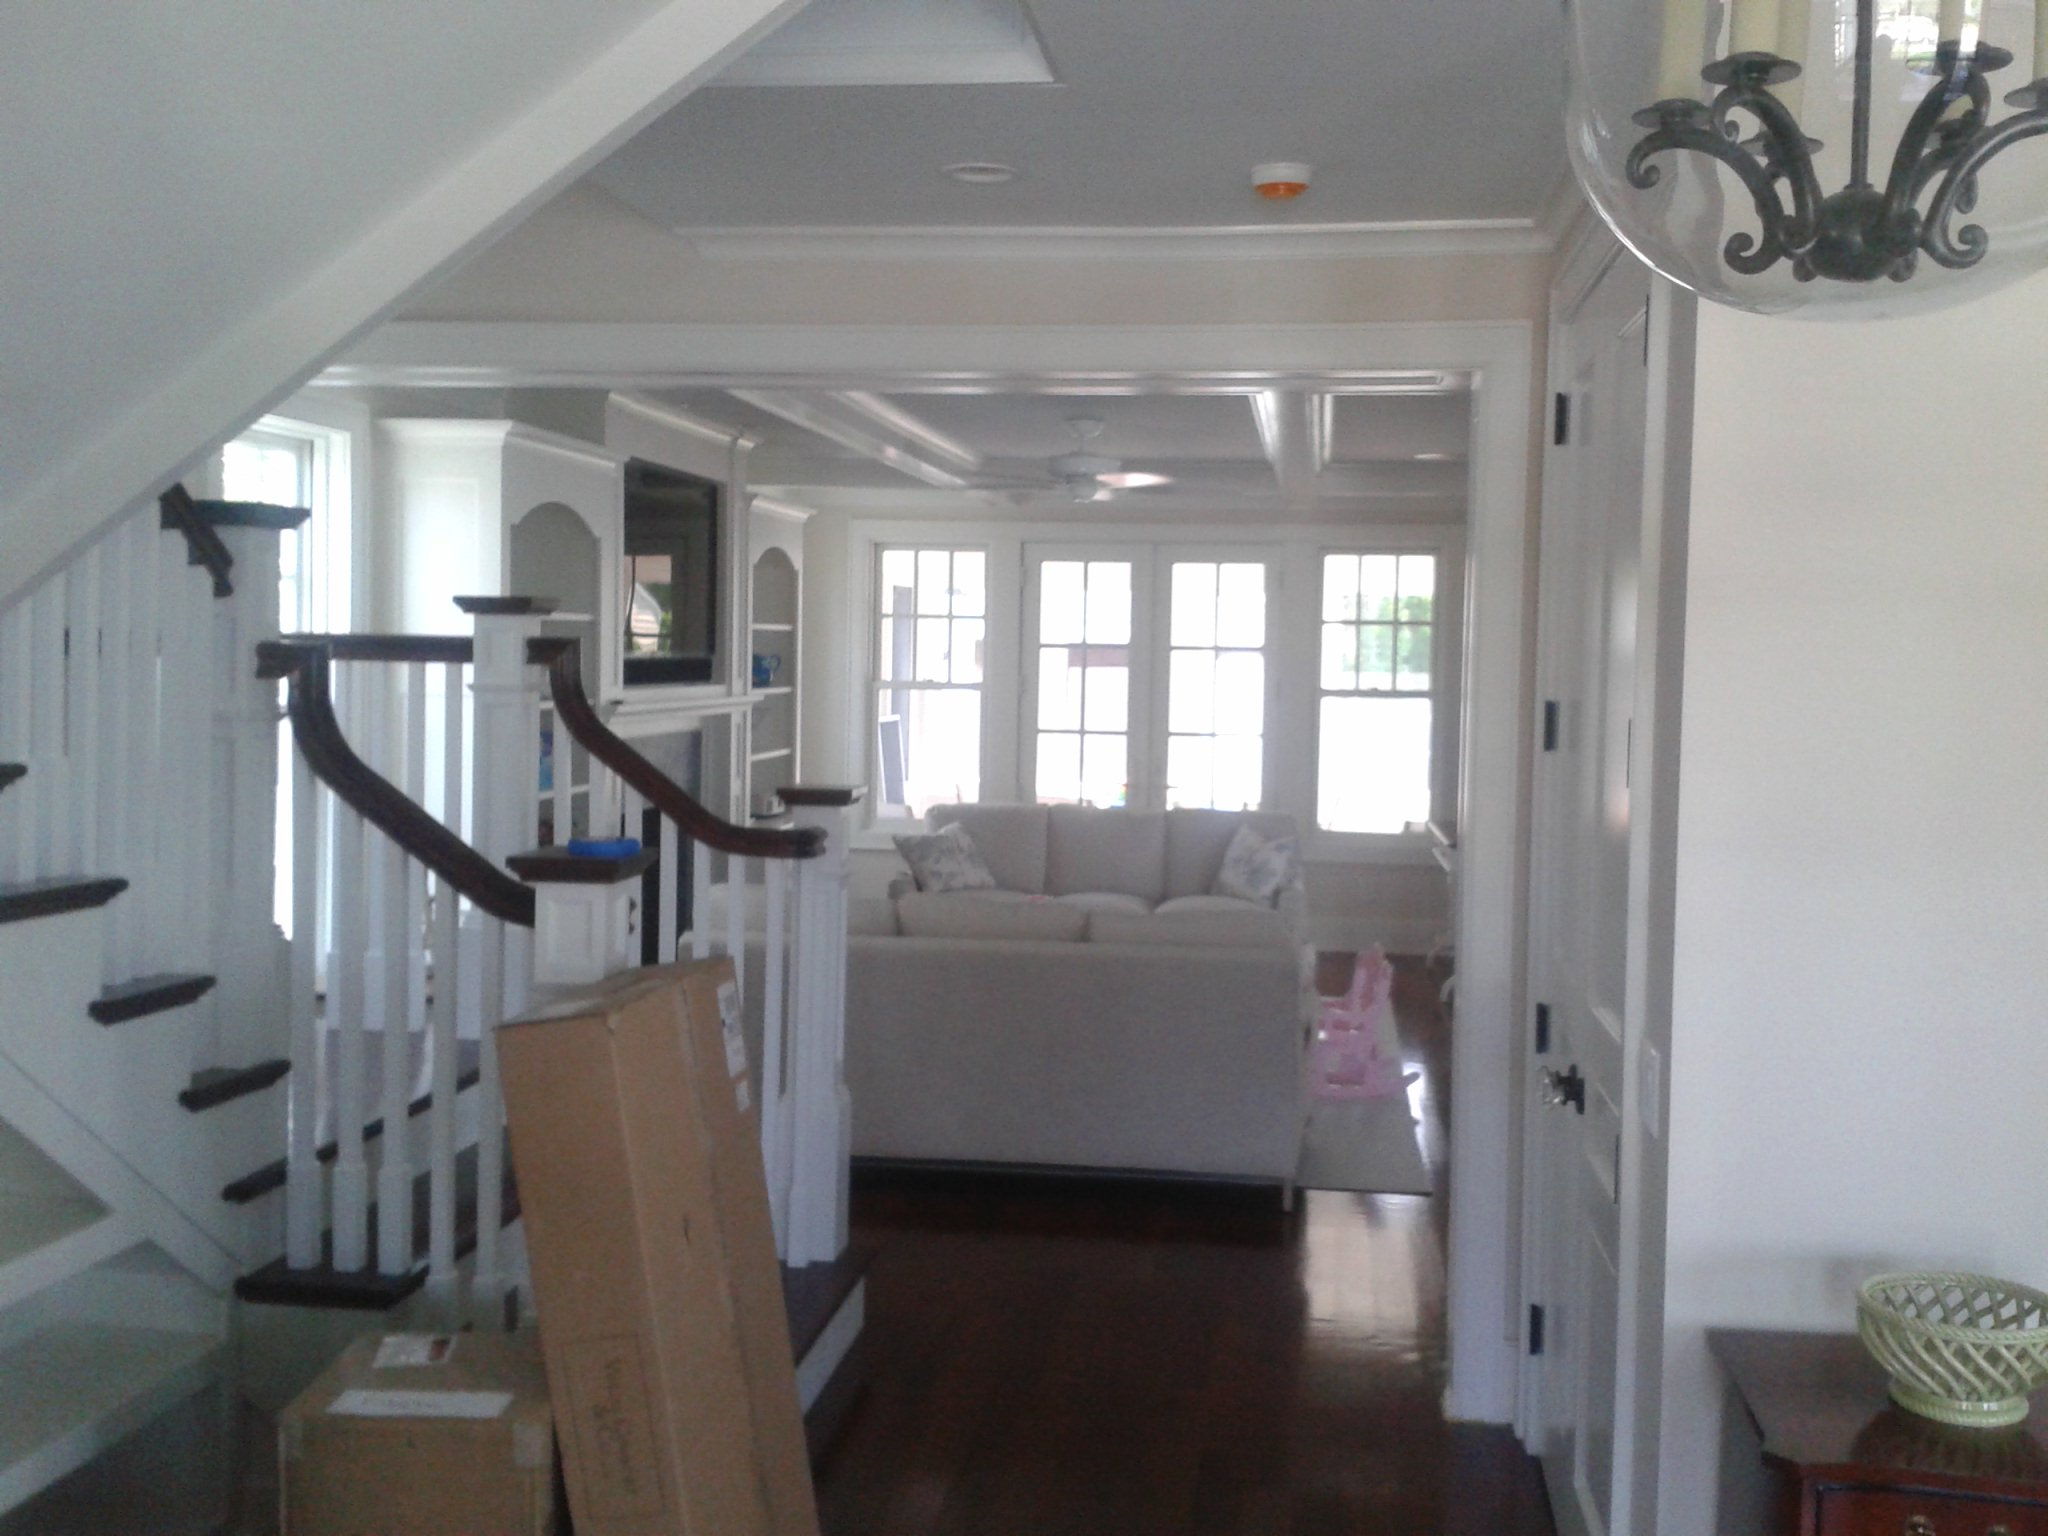 Interior walls and railings painted by Local Painting Contractor